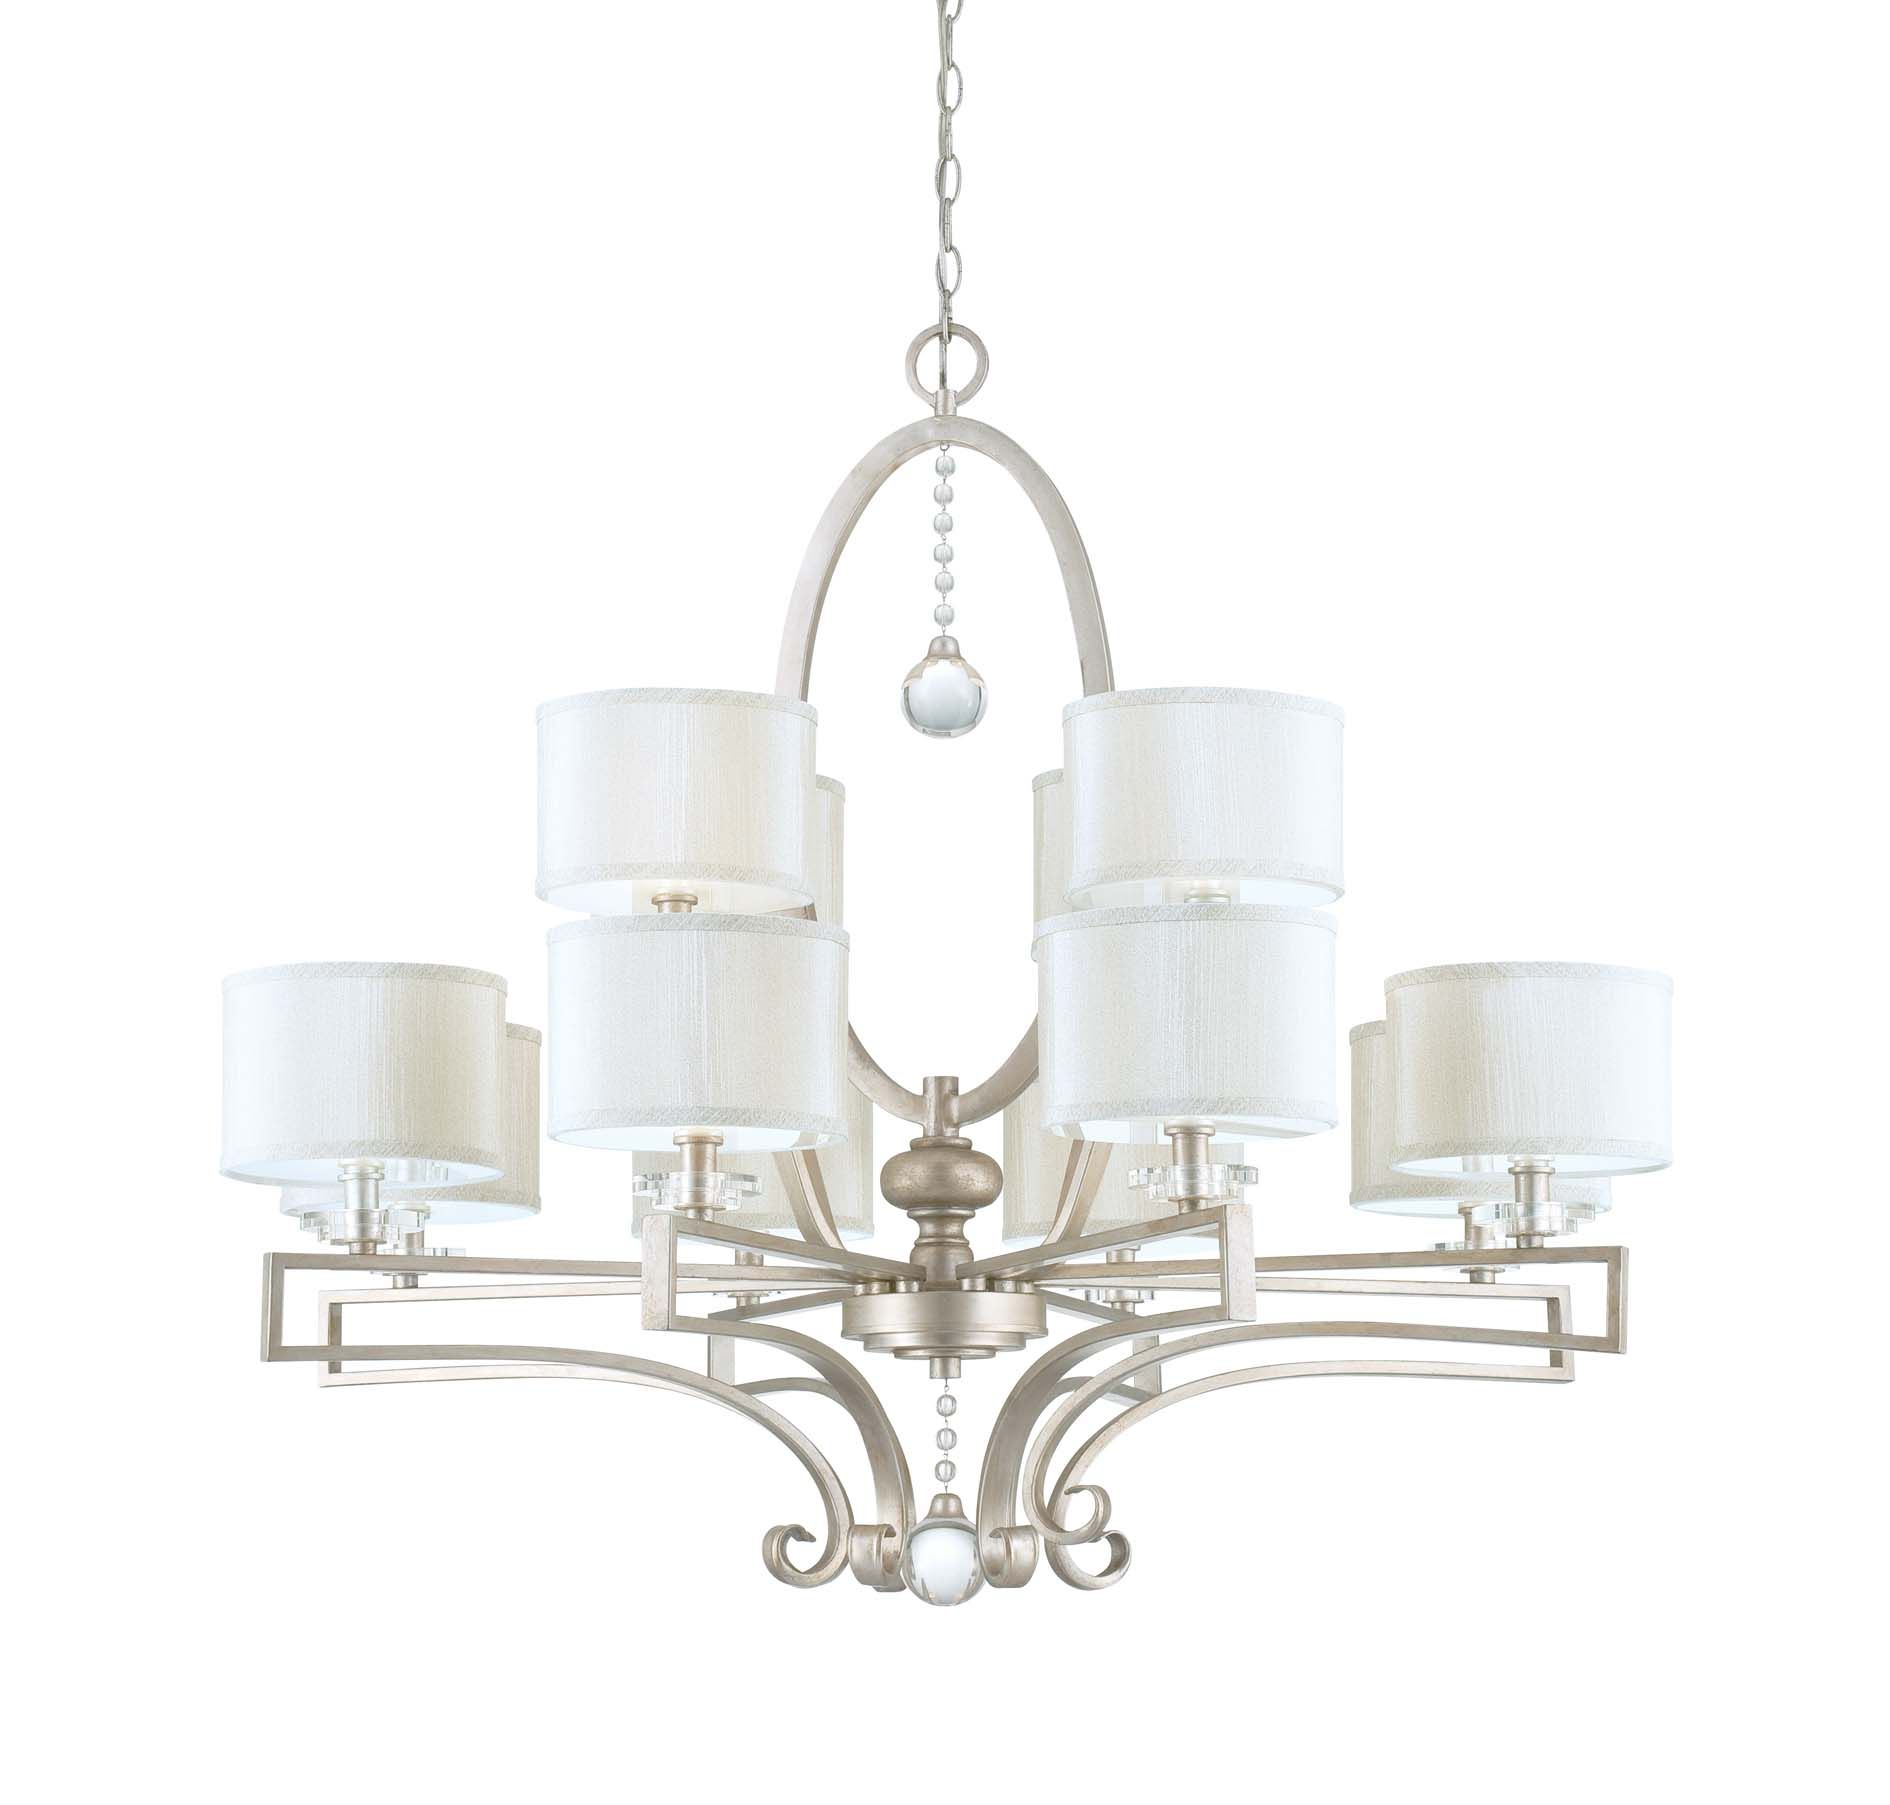 Rosendal 12 light chandelier mp project pinterest chandeliers rosendal 12 light chandelier arubaitofo Choice Image